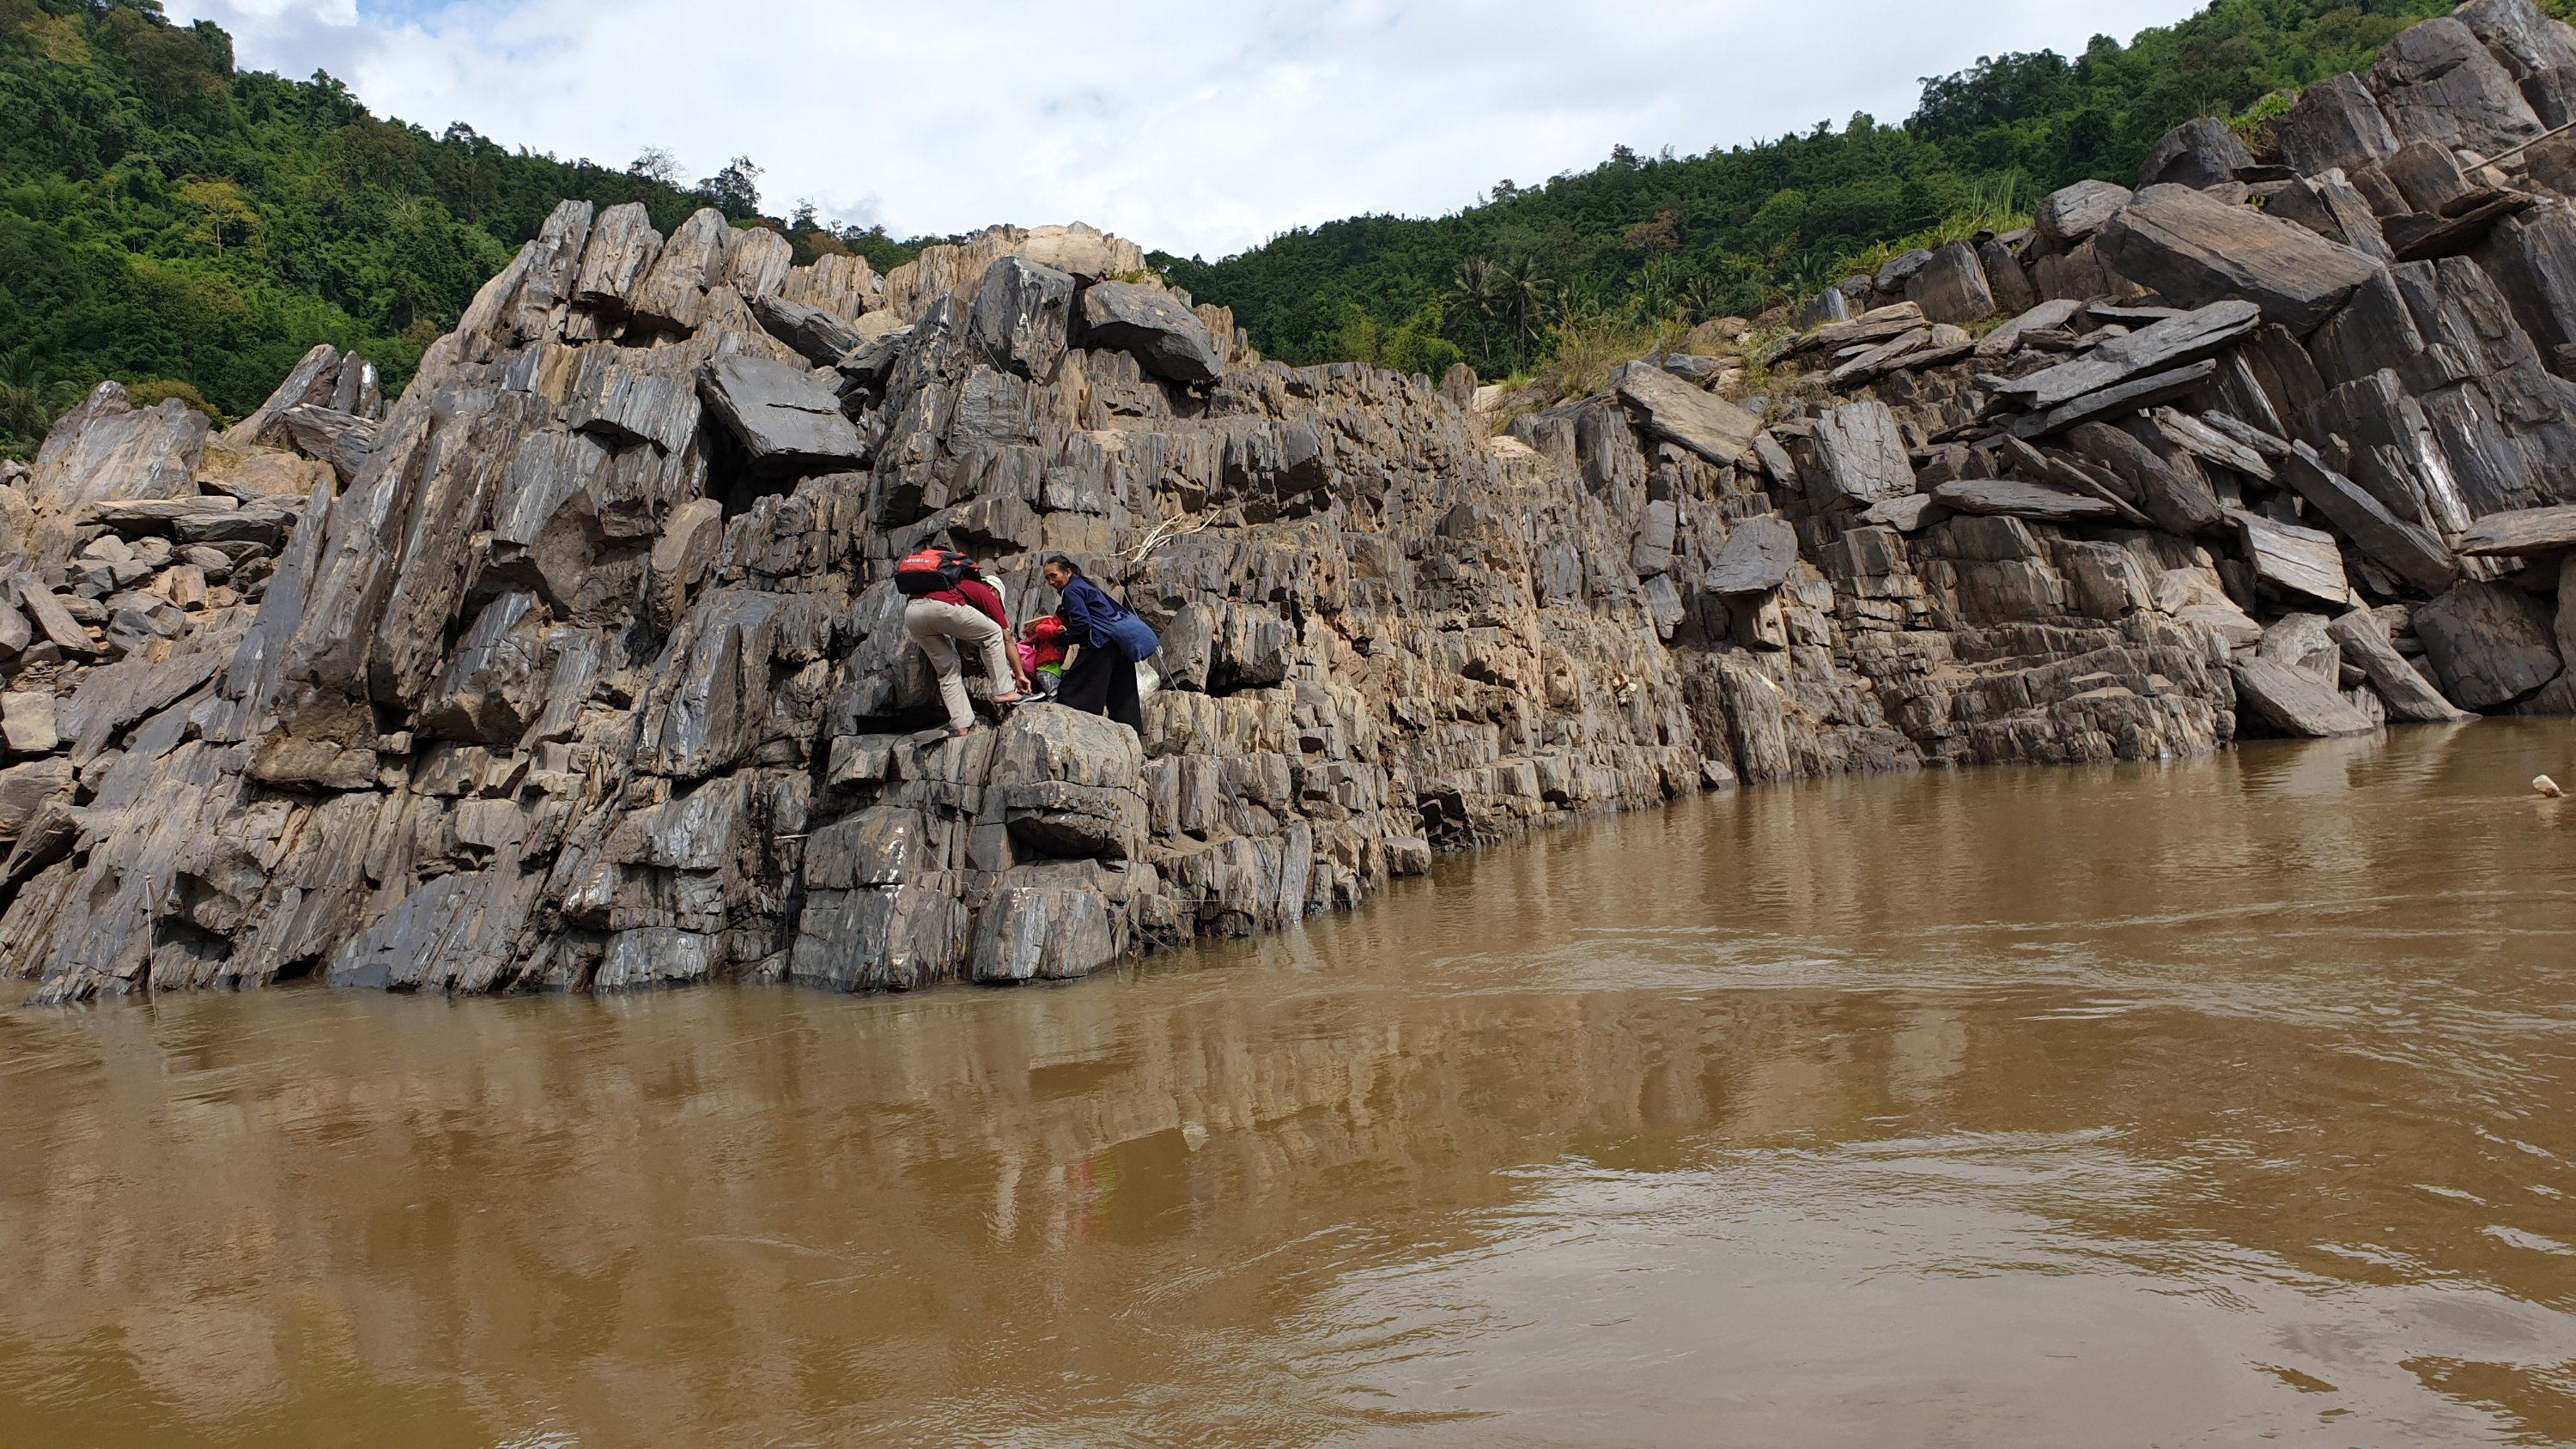 Dropping locals off on a rock from a slow boat in Laos on the Mekong river